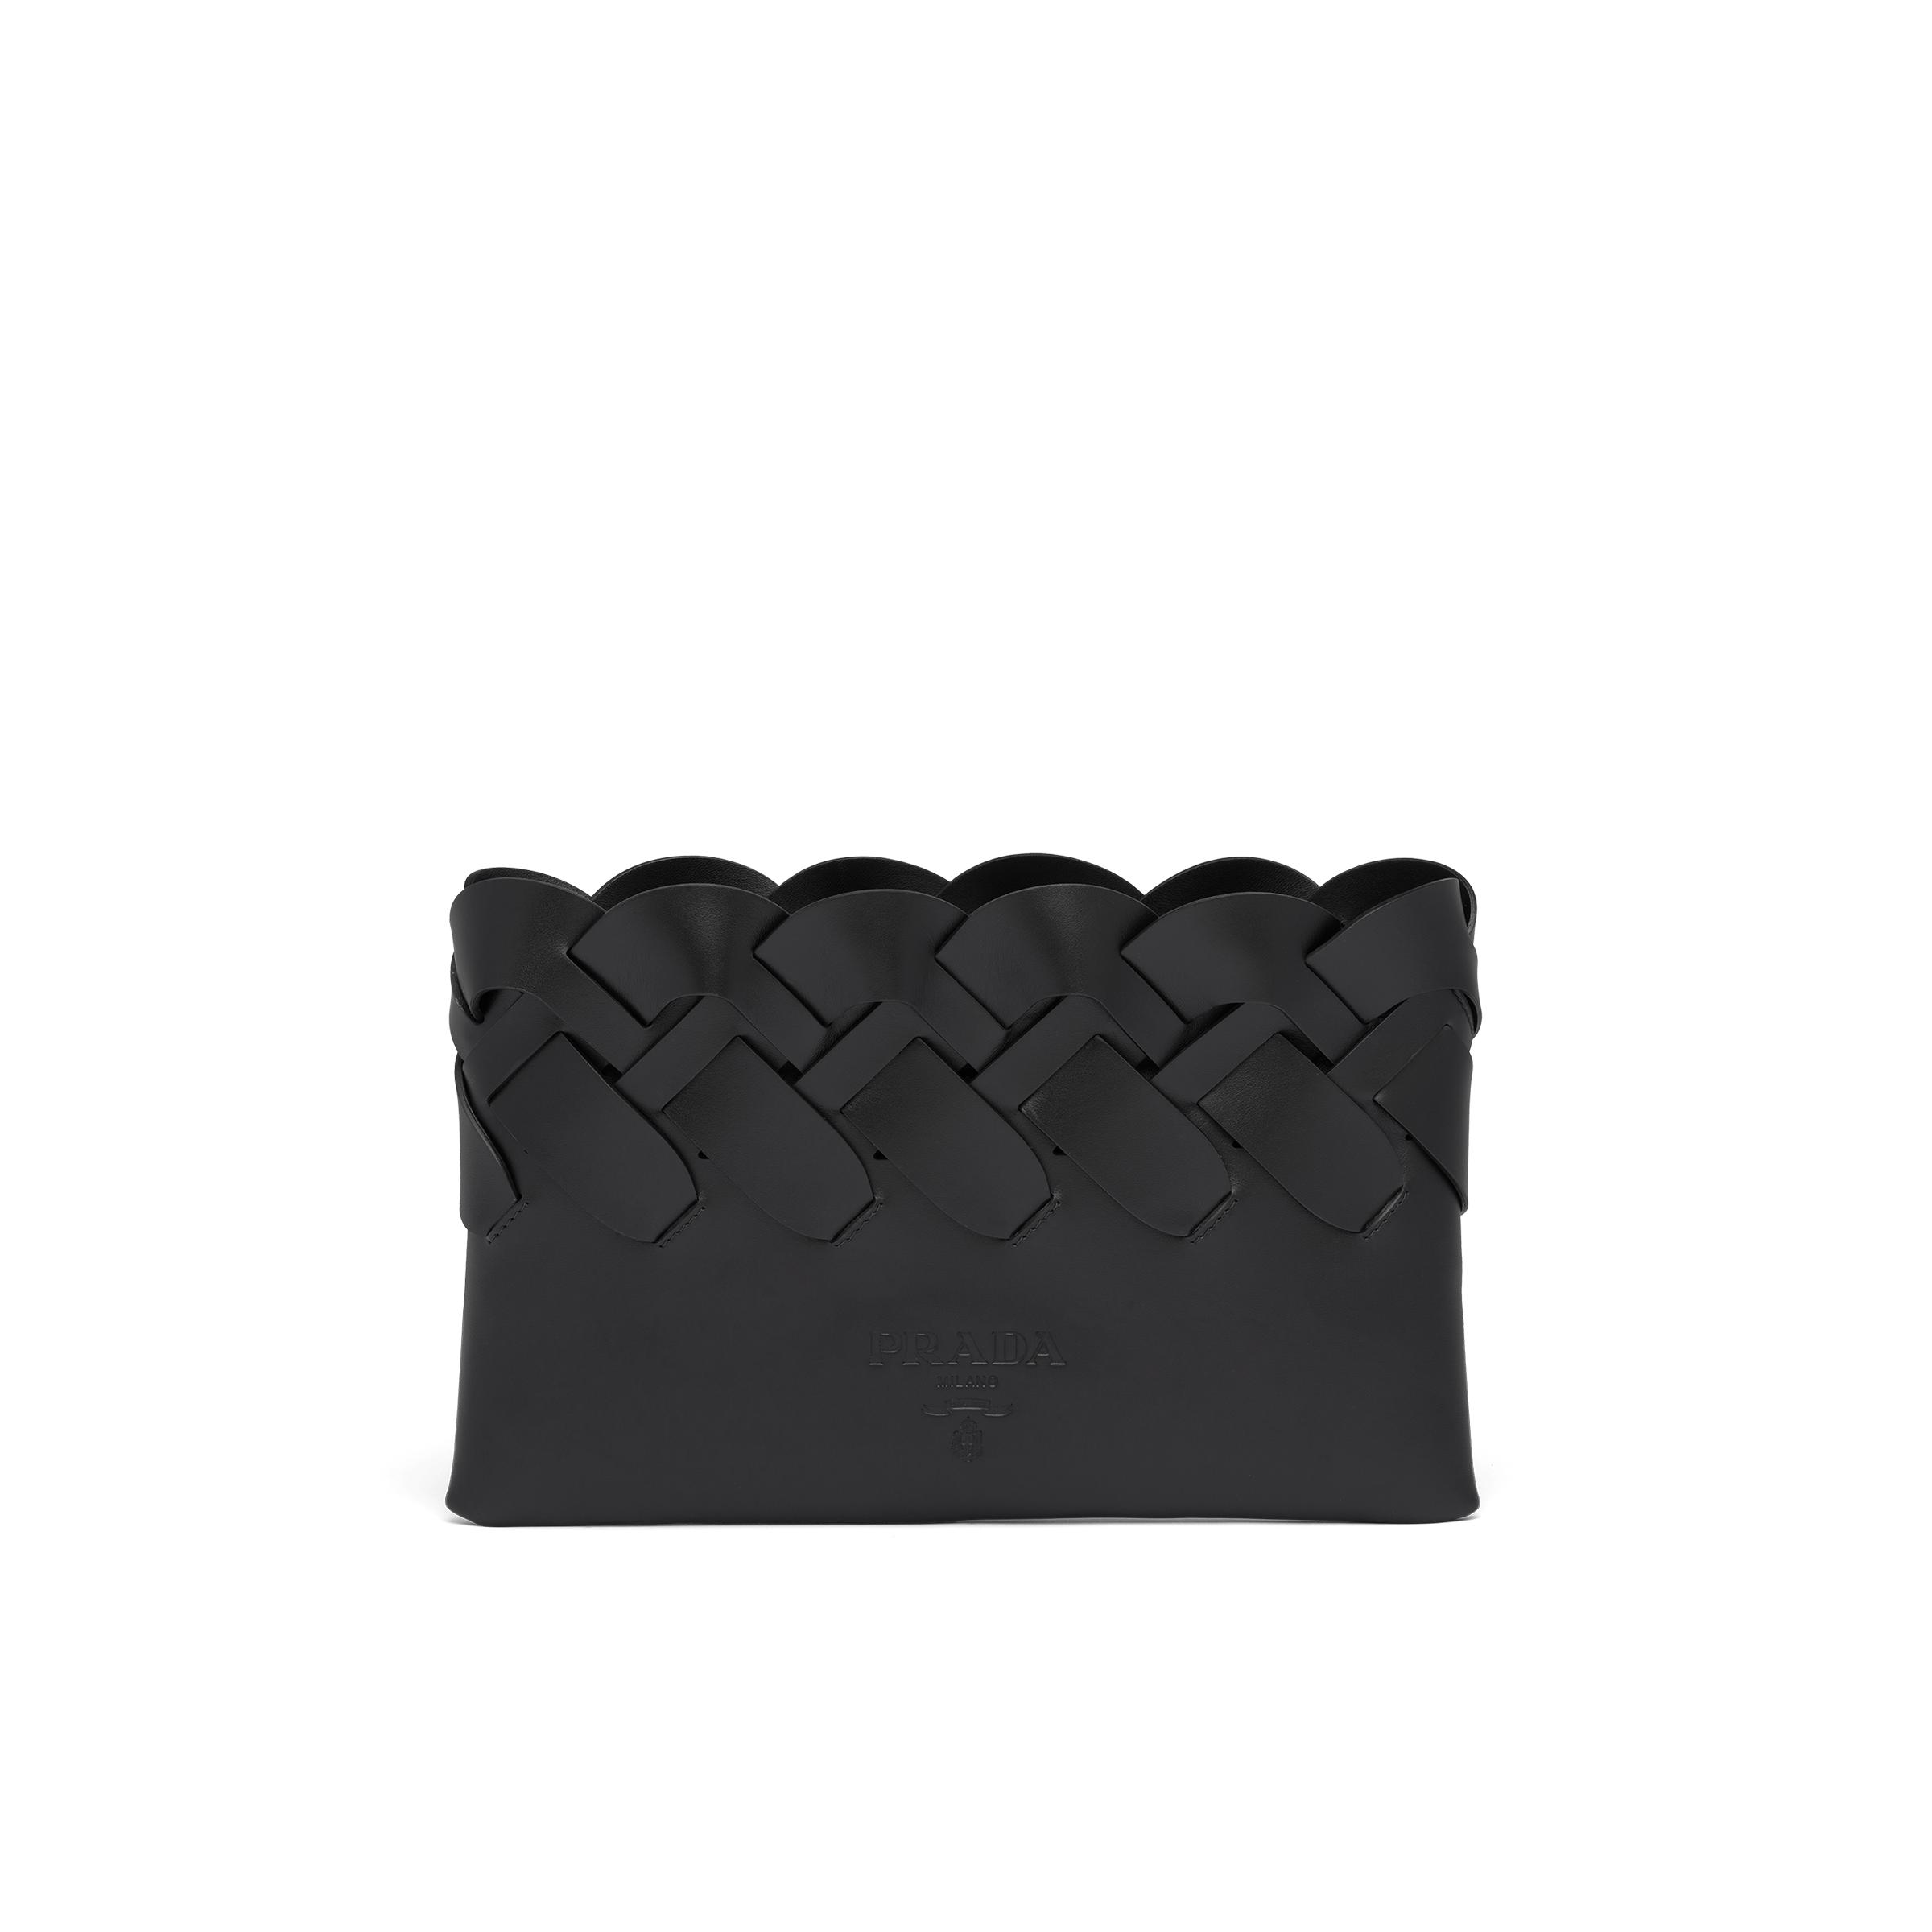 Tress Leather Clutch With Large Woven Motif Women Black